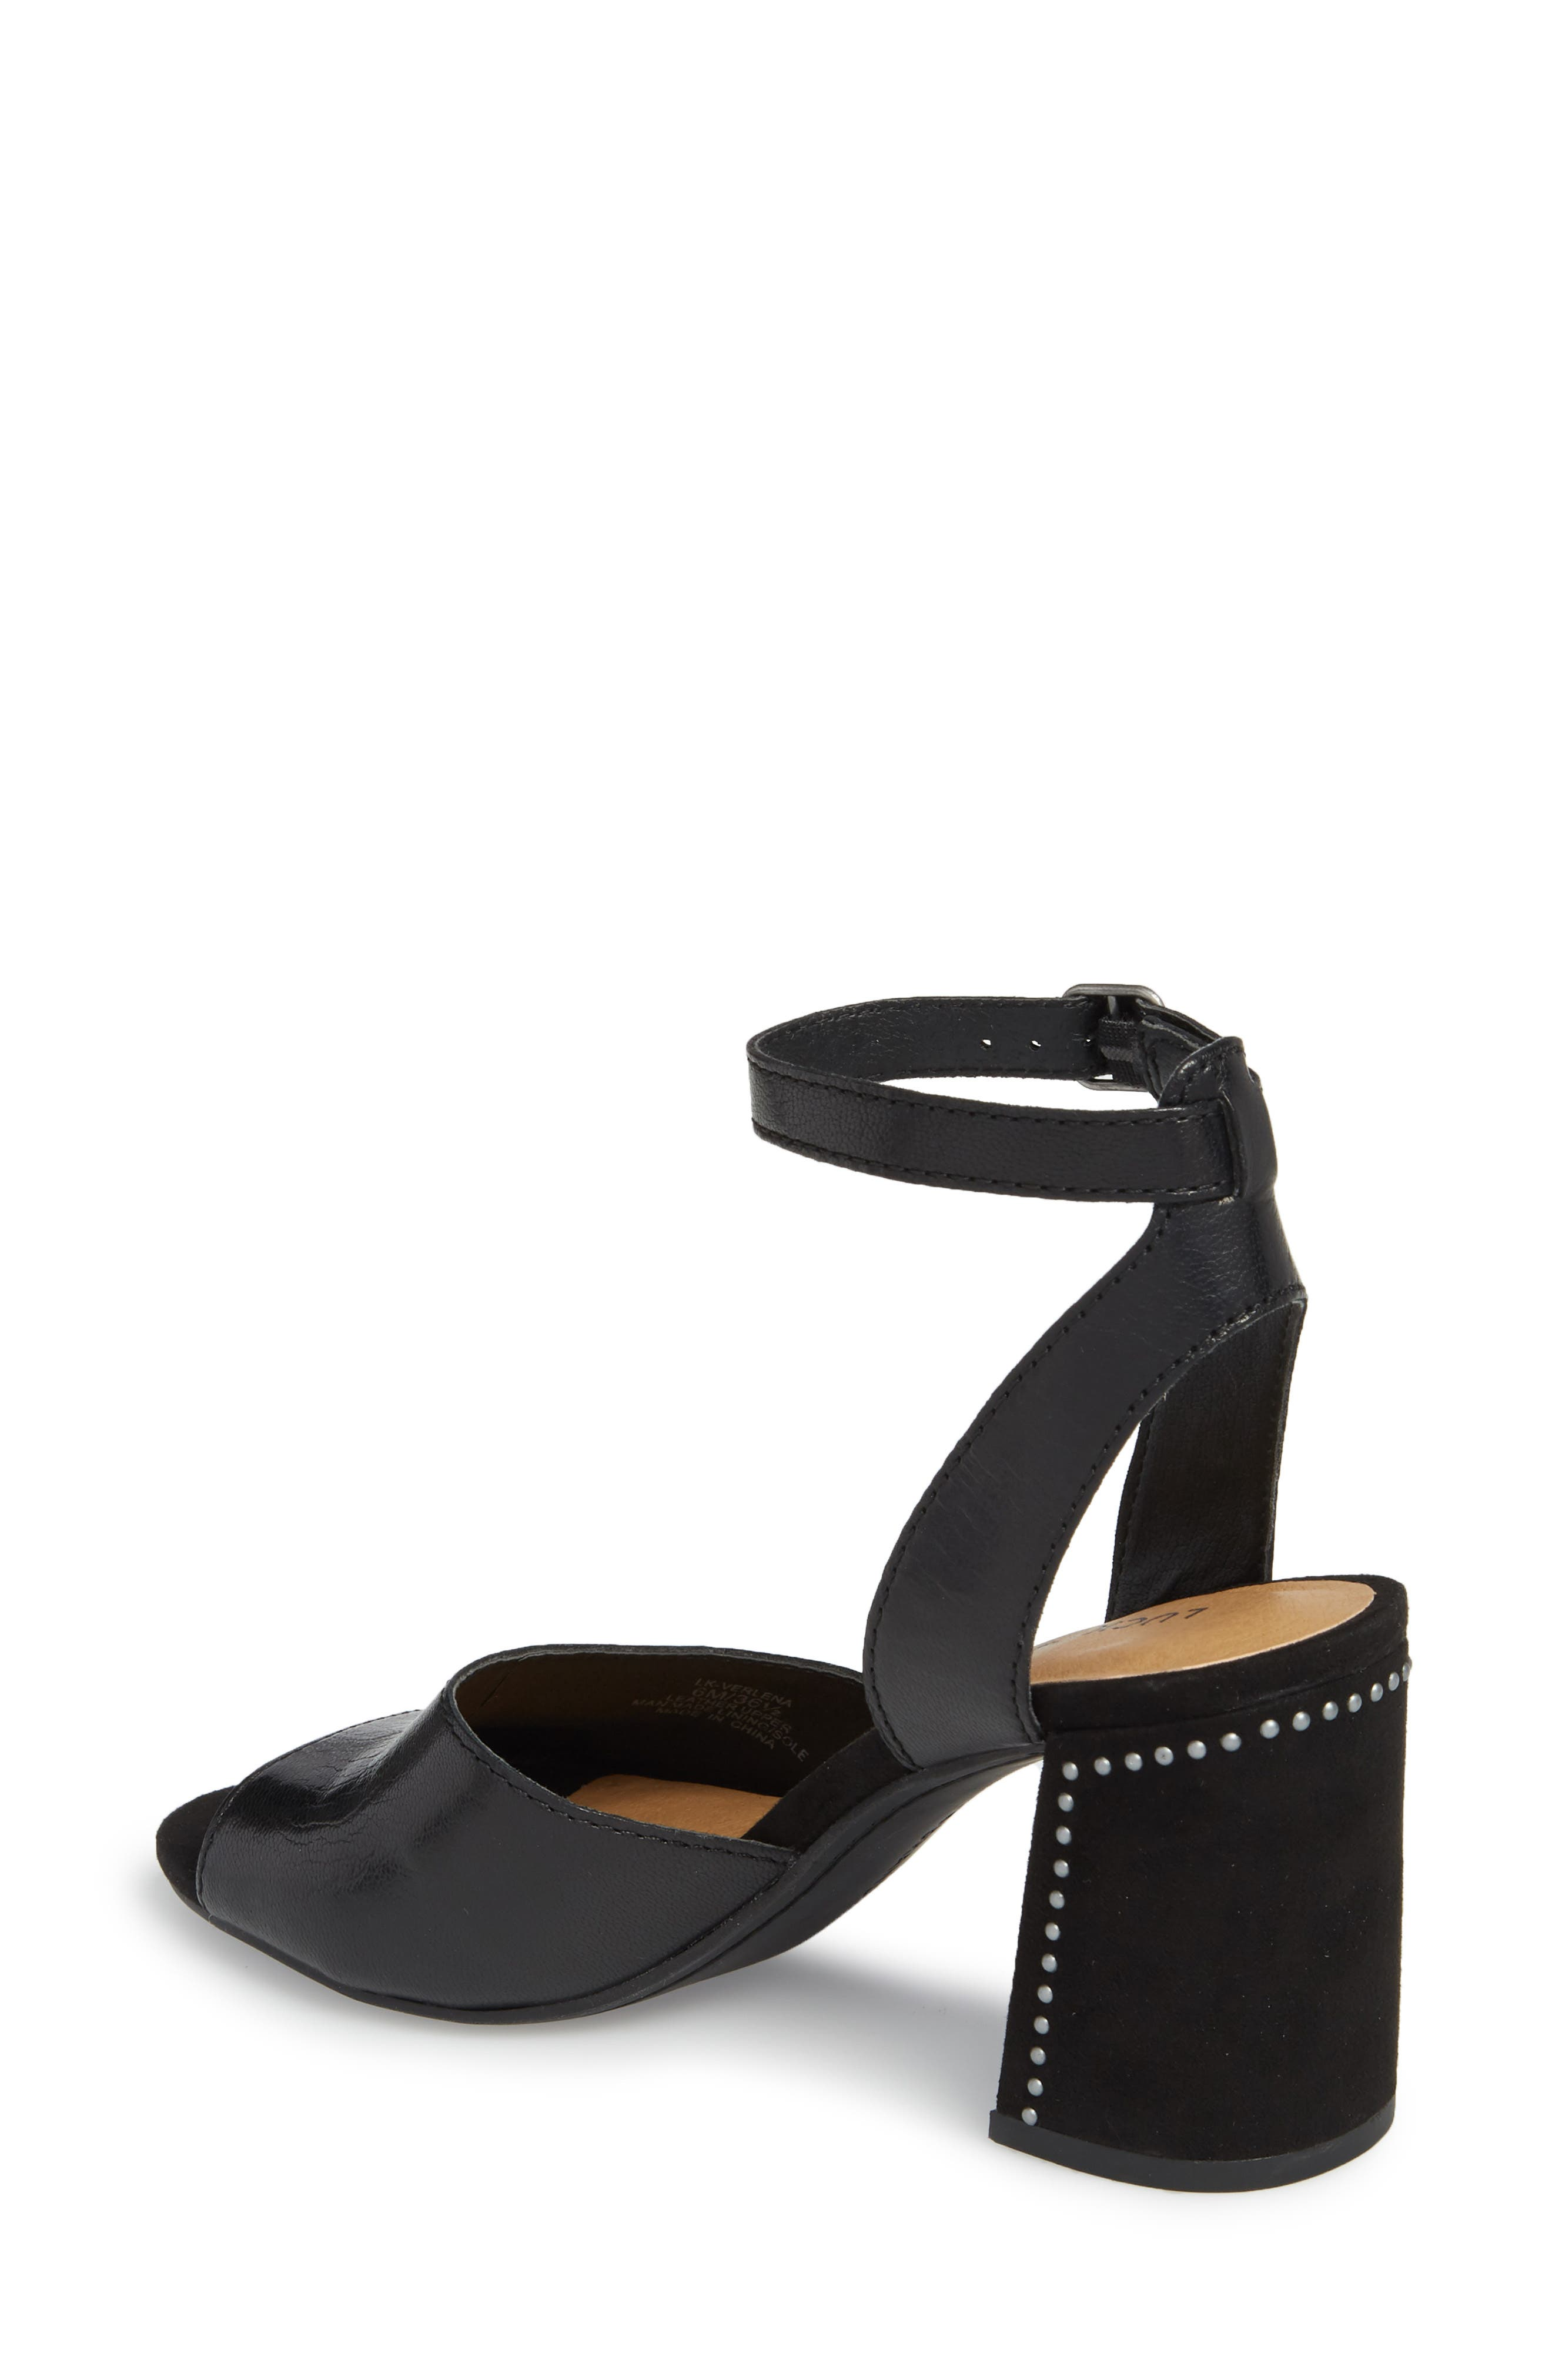 Verlena Sandal,                             Alternate thumbnail 2, color,                             Black Leather